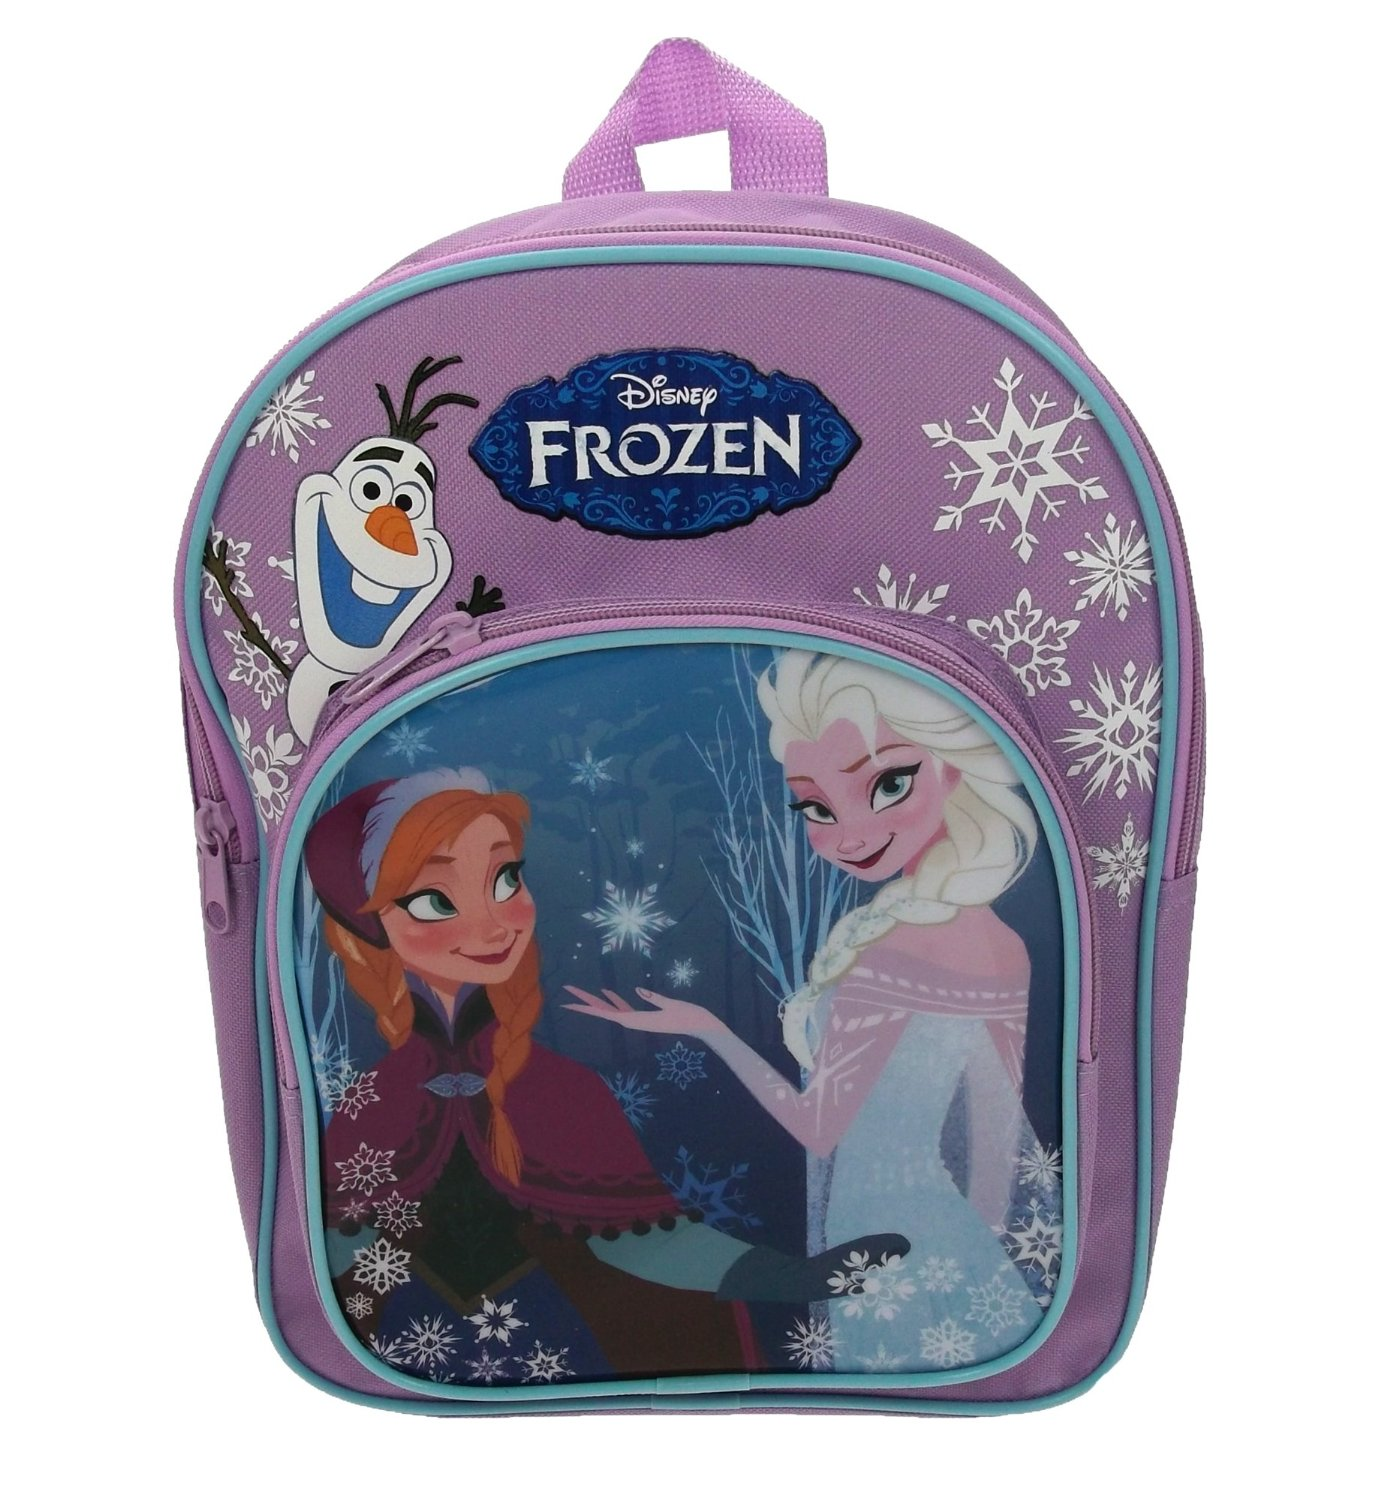 Disney Frozen backpack 001001